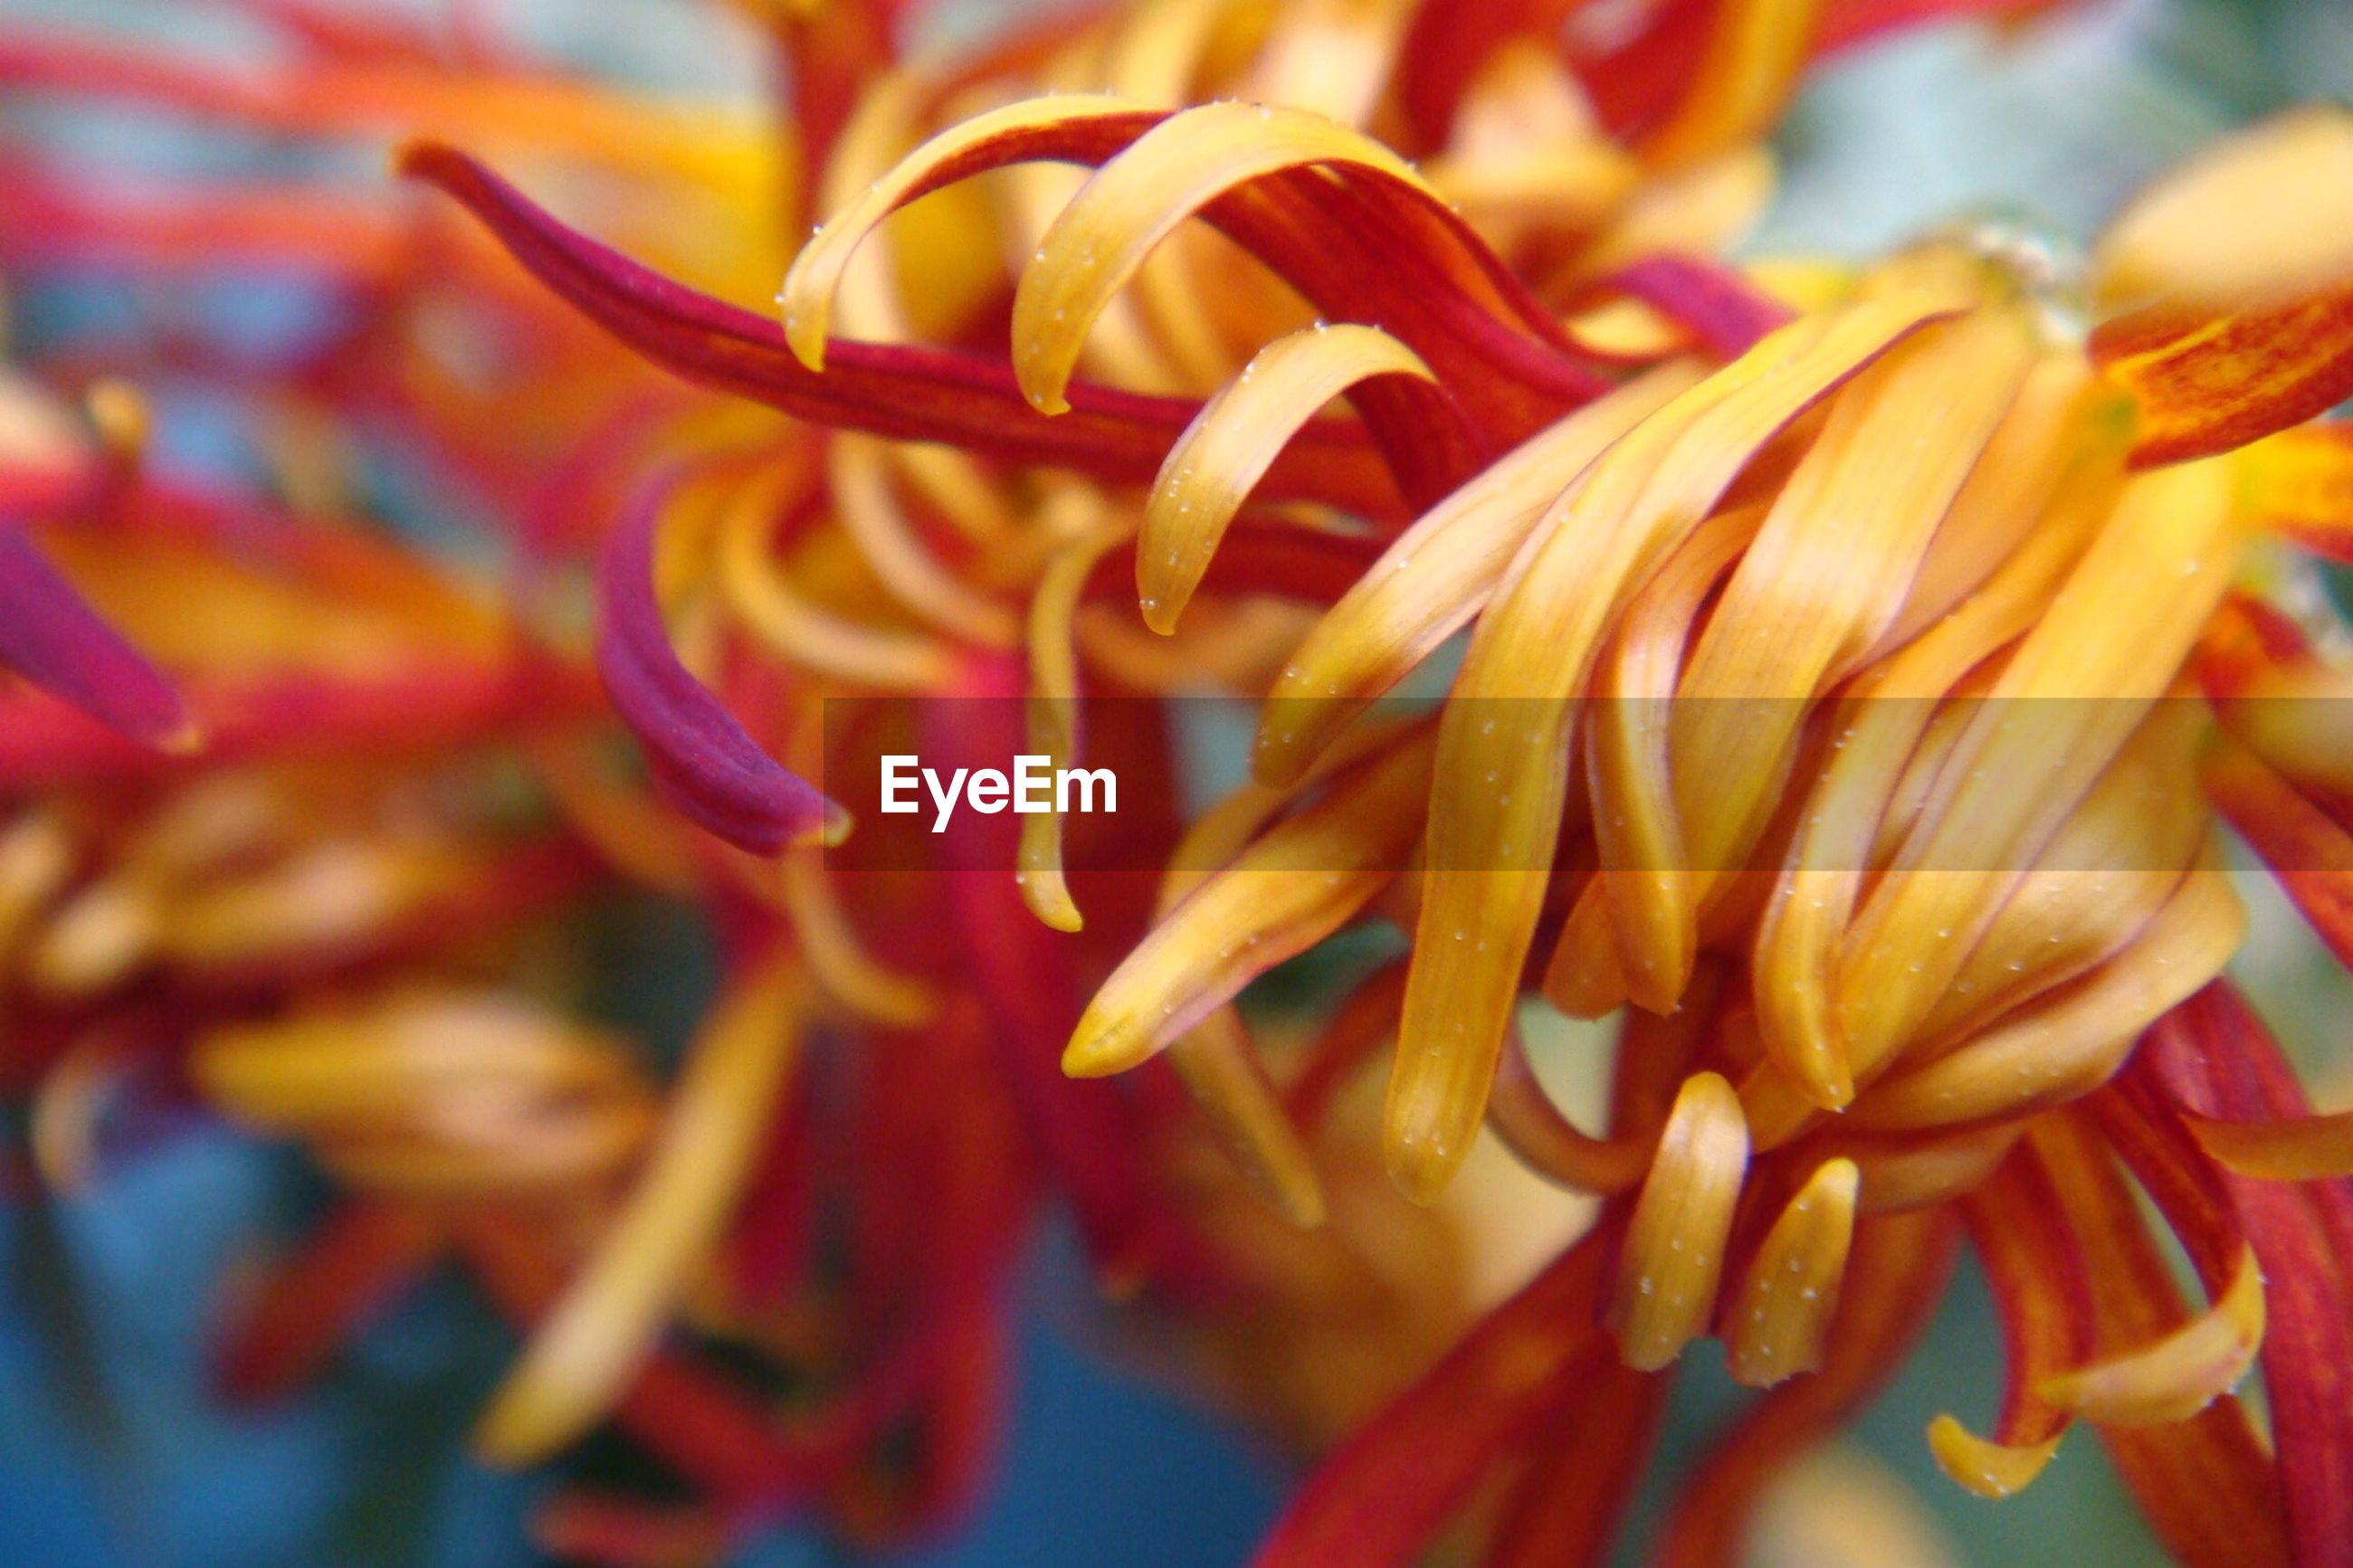 flower, petal, freshness, flower head, close-up, fragility, beauty in nature, growth, full frame, nature, orange color, backgrounds, blooming, focus on foreground, selective focus, red, plant, no people, abundance, yellow